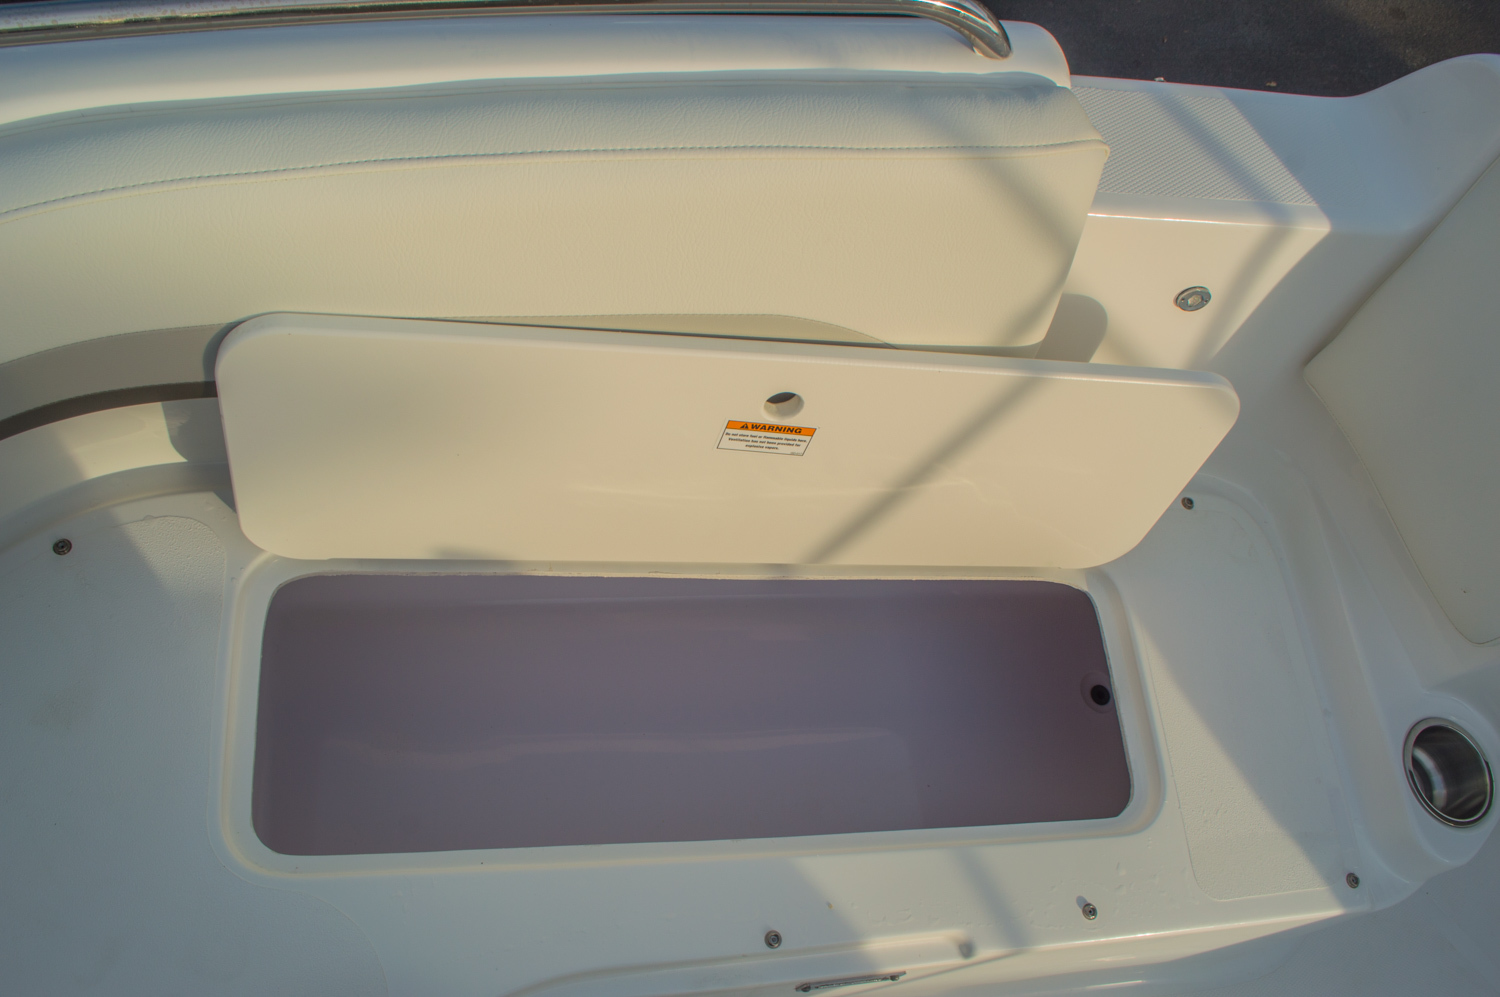 Thumbnail 49 for New 2016 Hurricane CC211 Center Consle boat for sale in West Palm Beach, FL